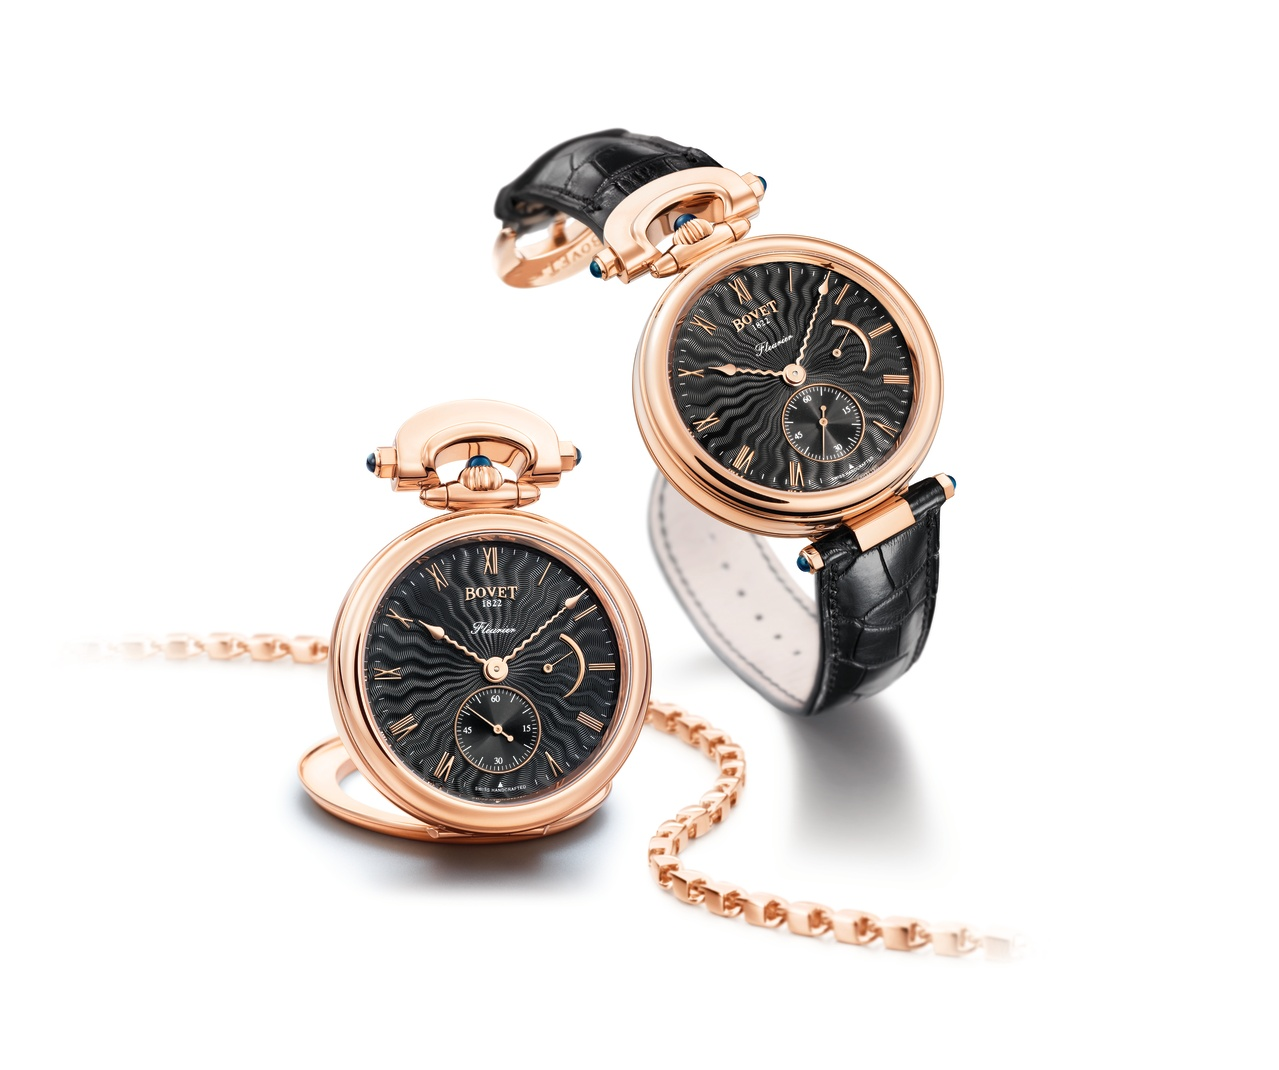 Bovet Watch   Amadeo Fleurier   Ref. Nr. AF43033    Call 312-944-3100  | For Availability